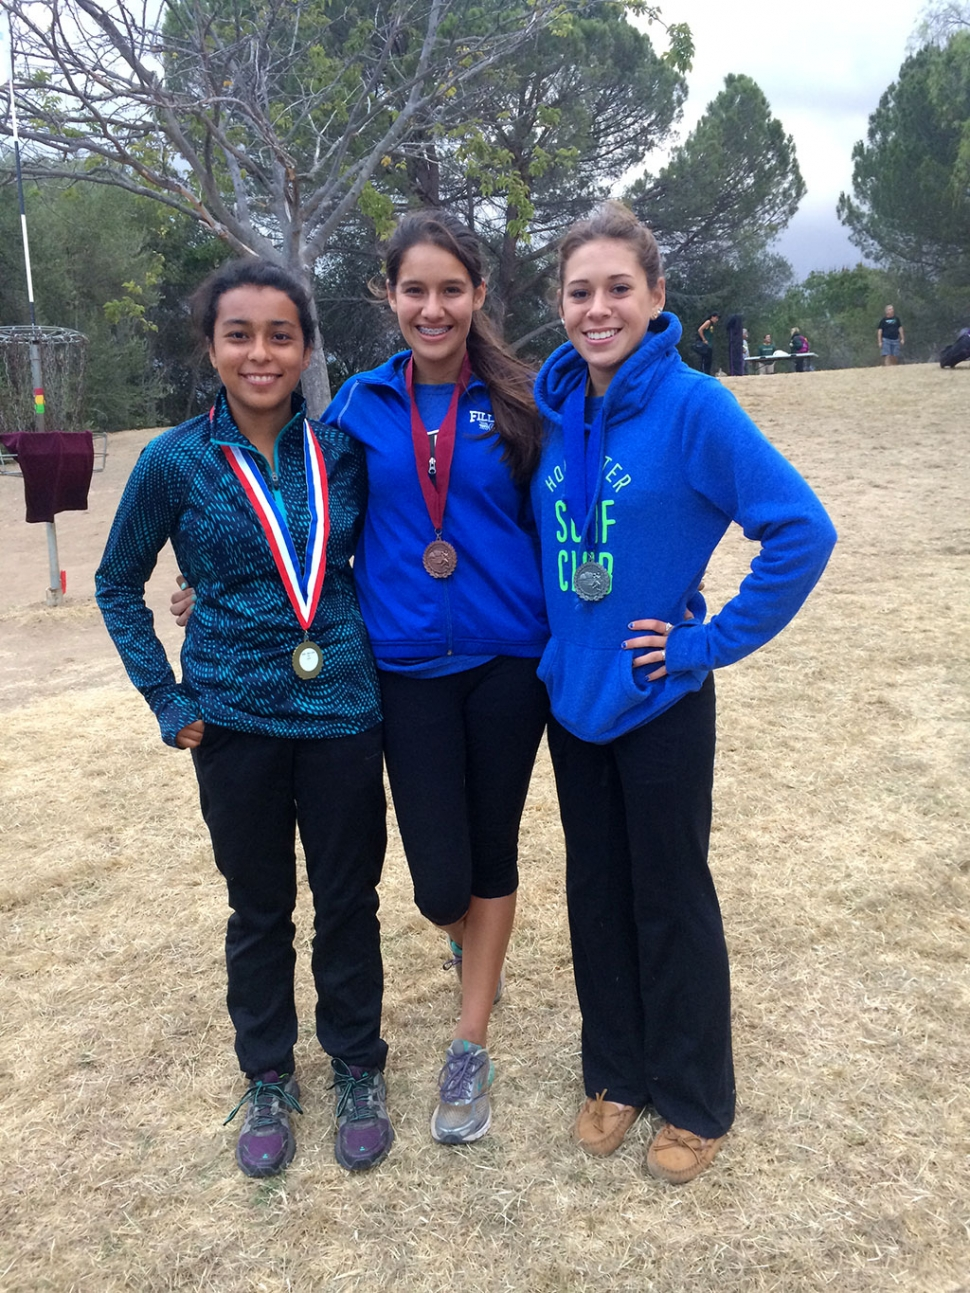 The Lady Flashes Medalist at the Ventura County Cross Country Championships. (l-r) Jackie Chavez, Alexis Tafoya and Jordan Manzano